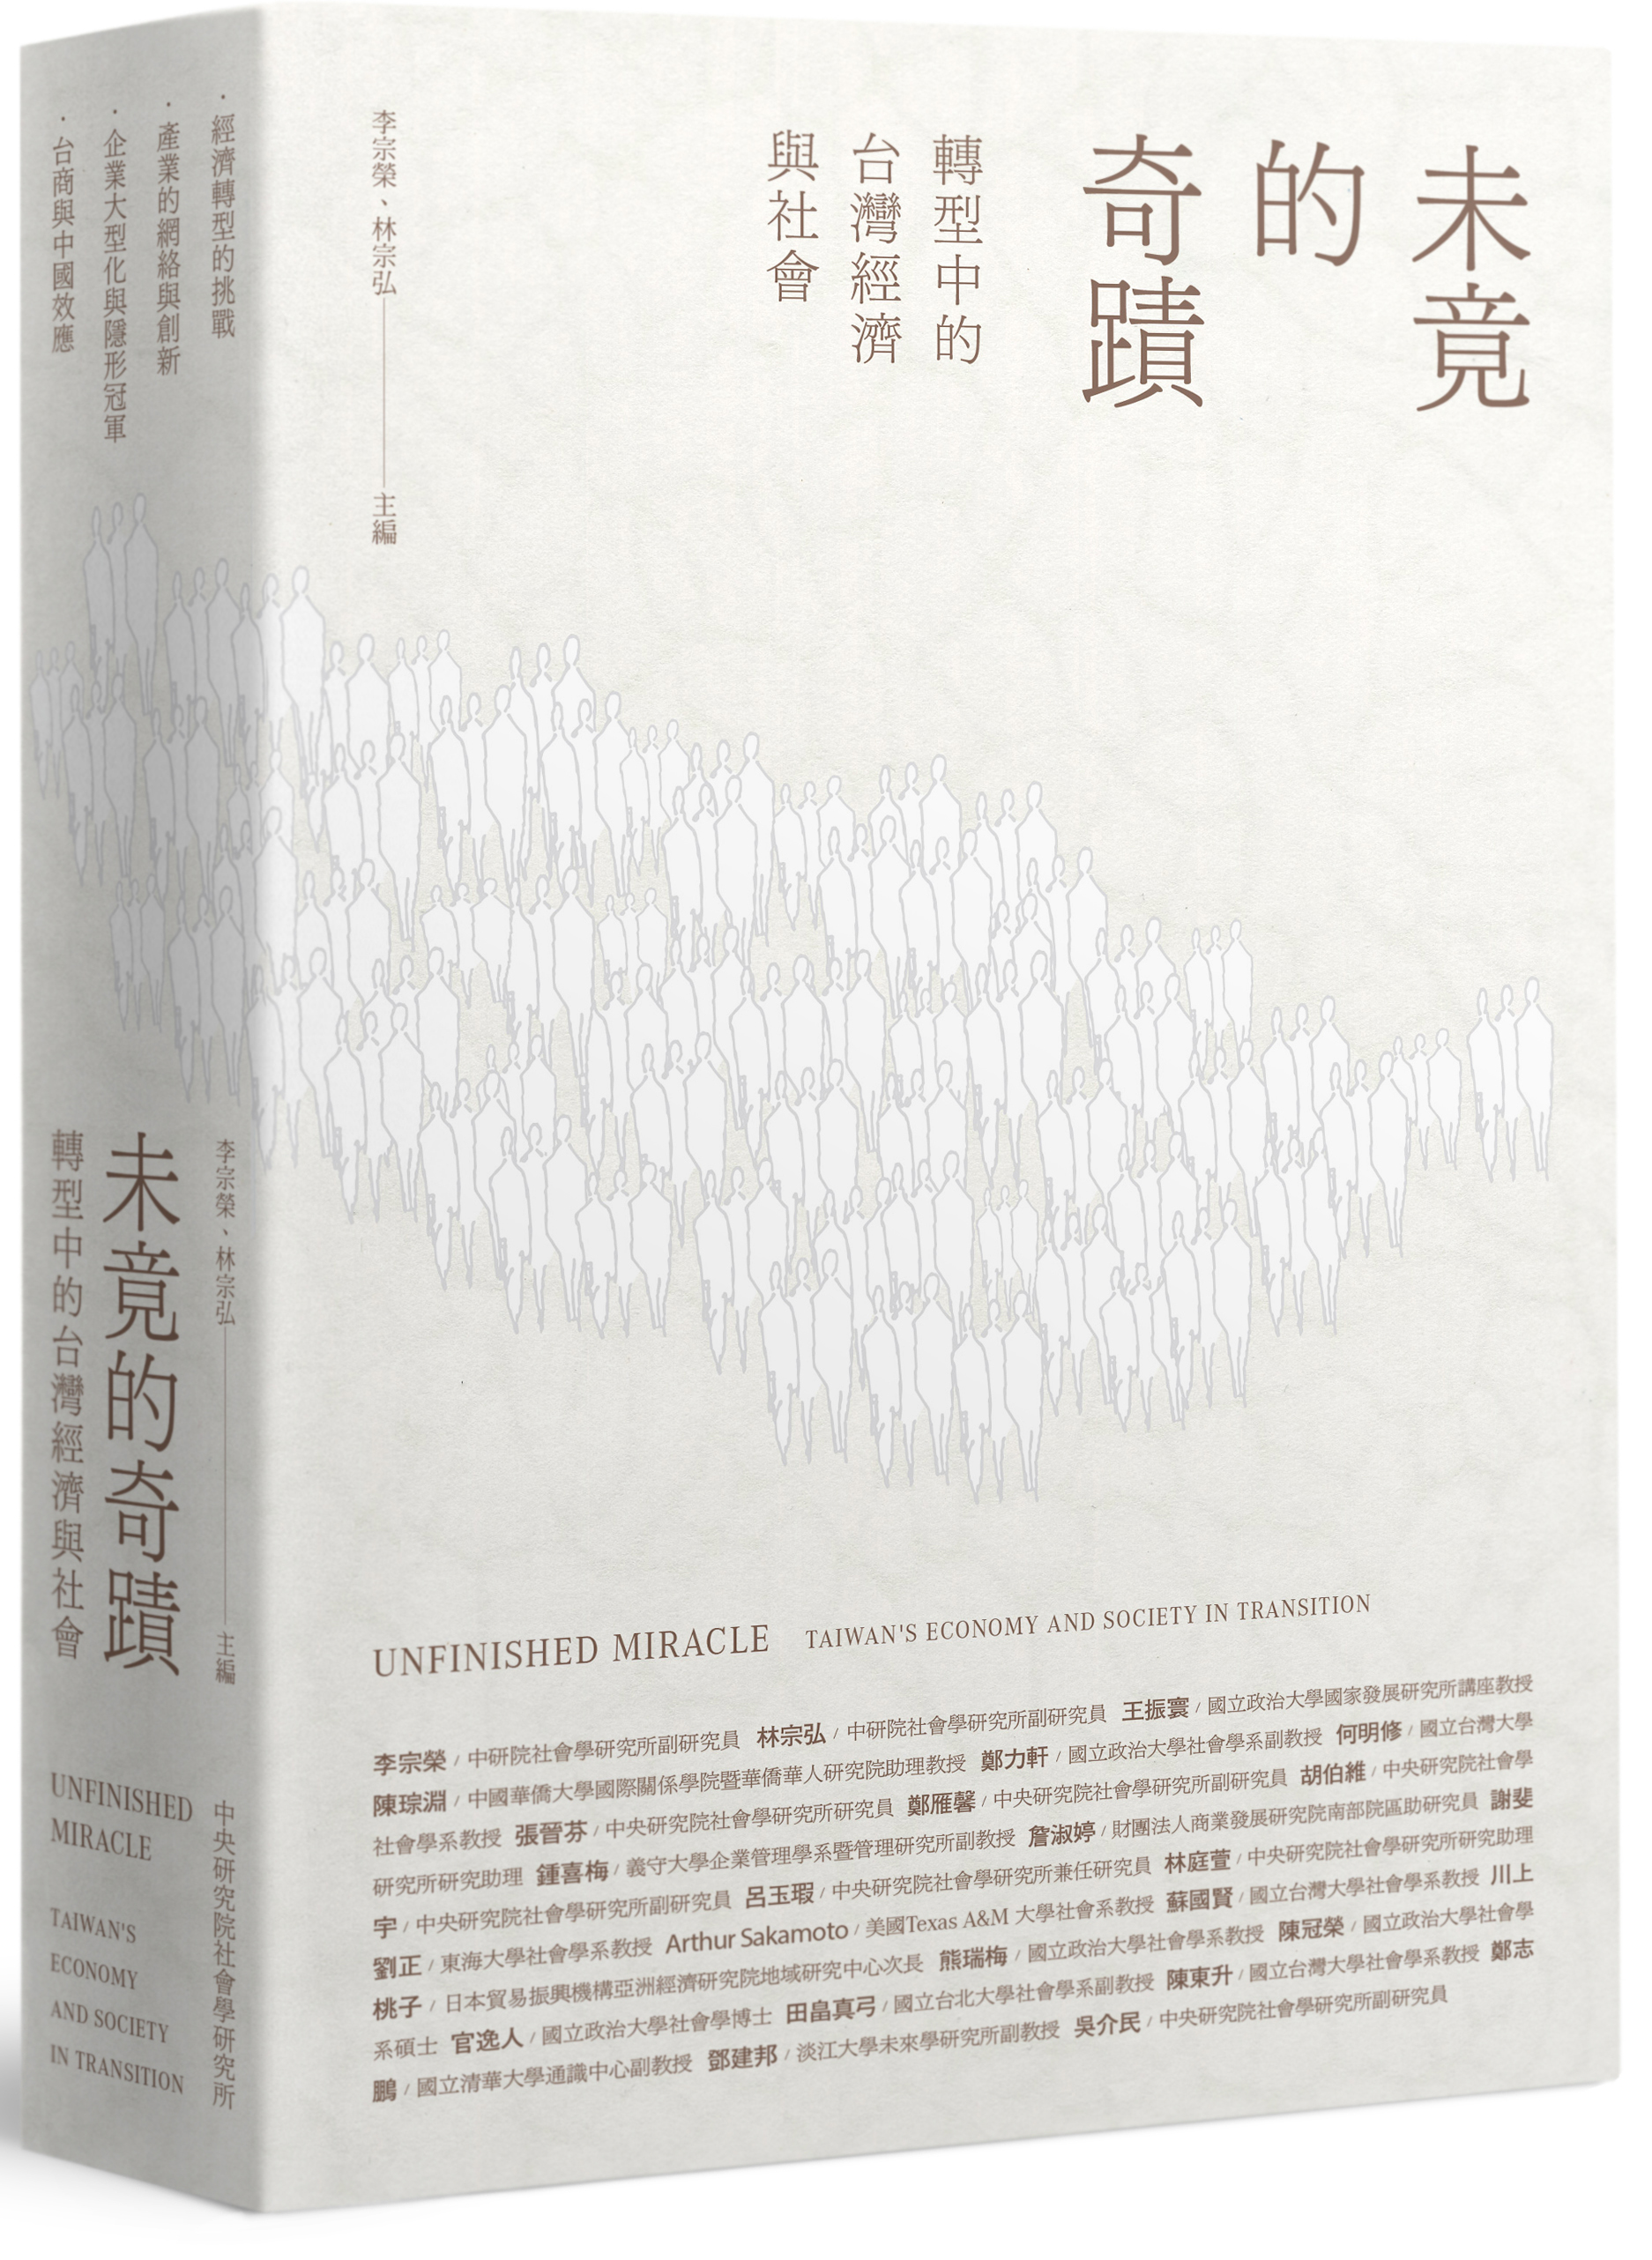 book cover of Unfinished Miracle: Taiwan's Economy and Society in Transition